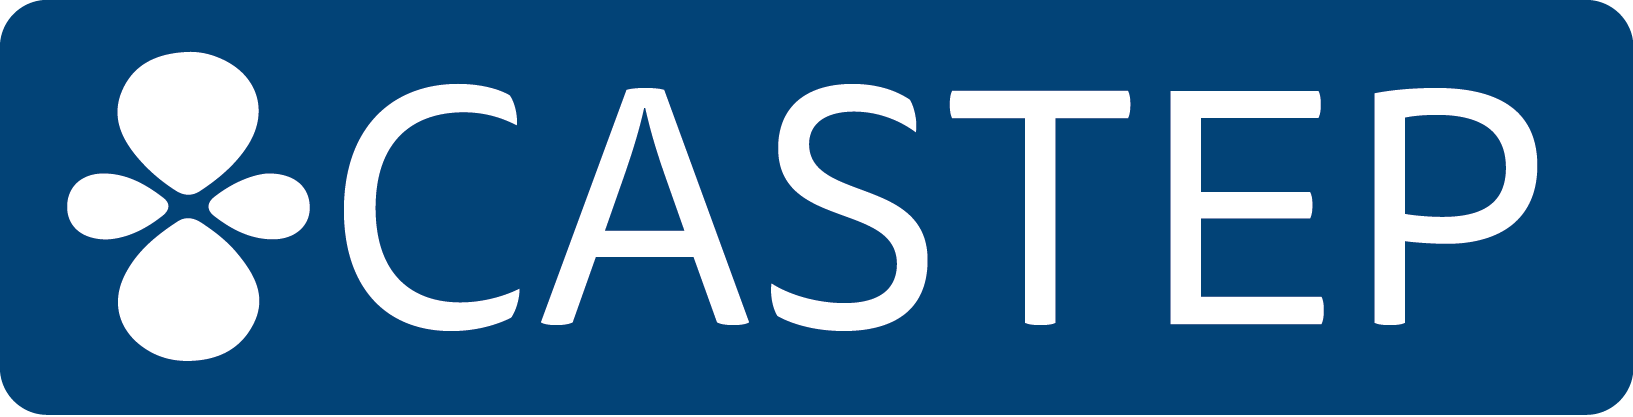 New academic license for CASTEP